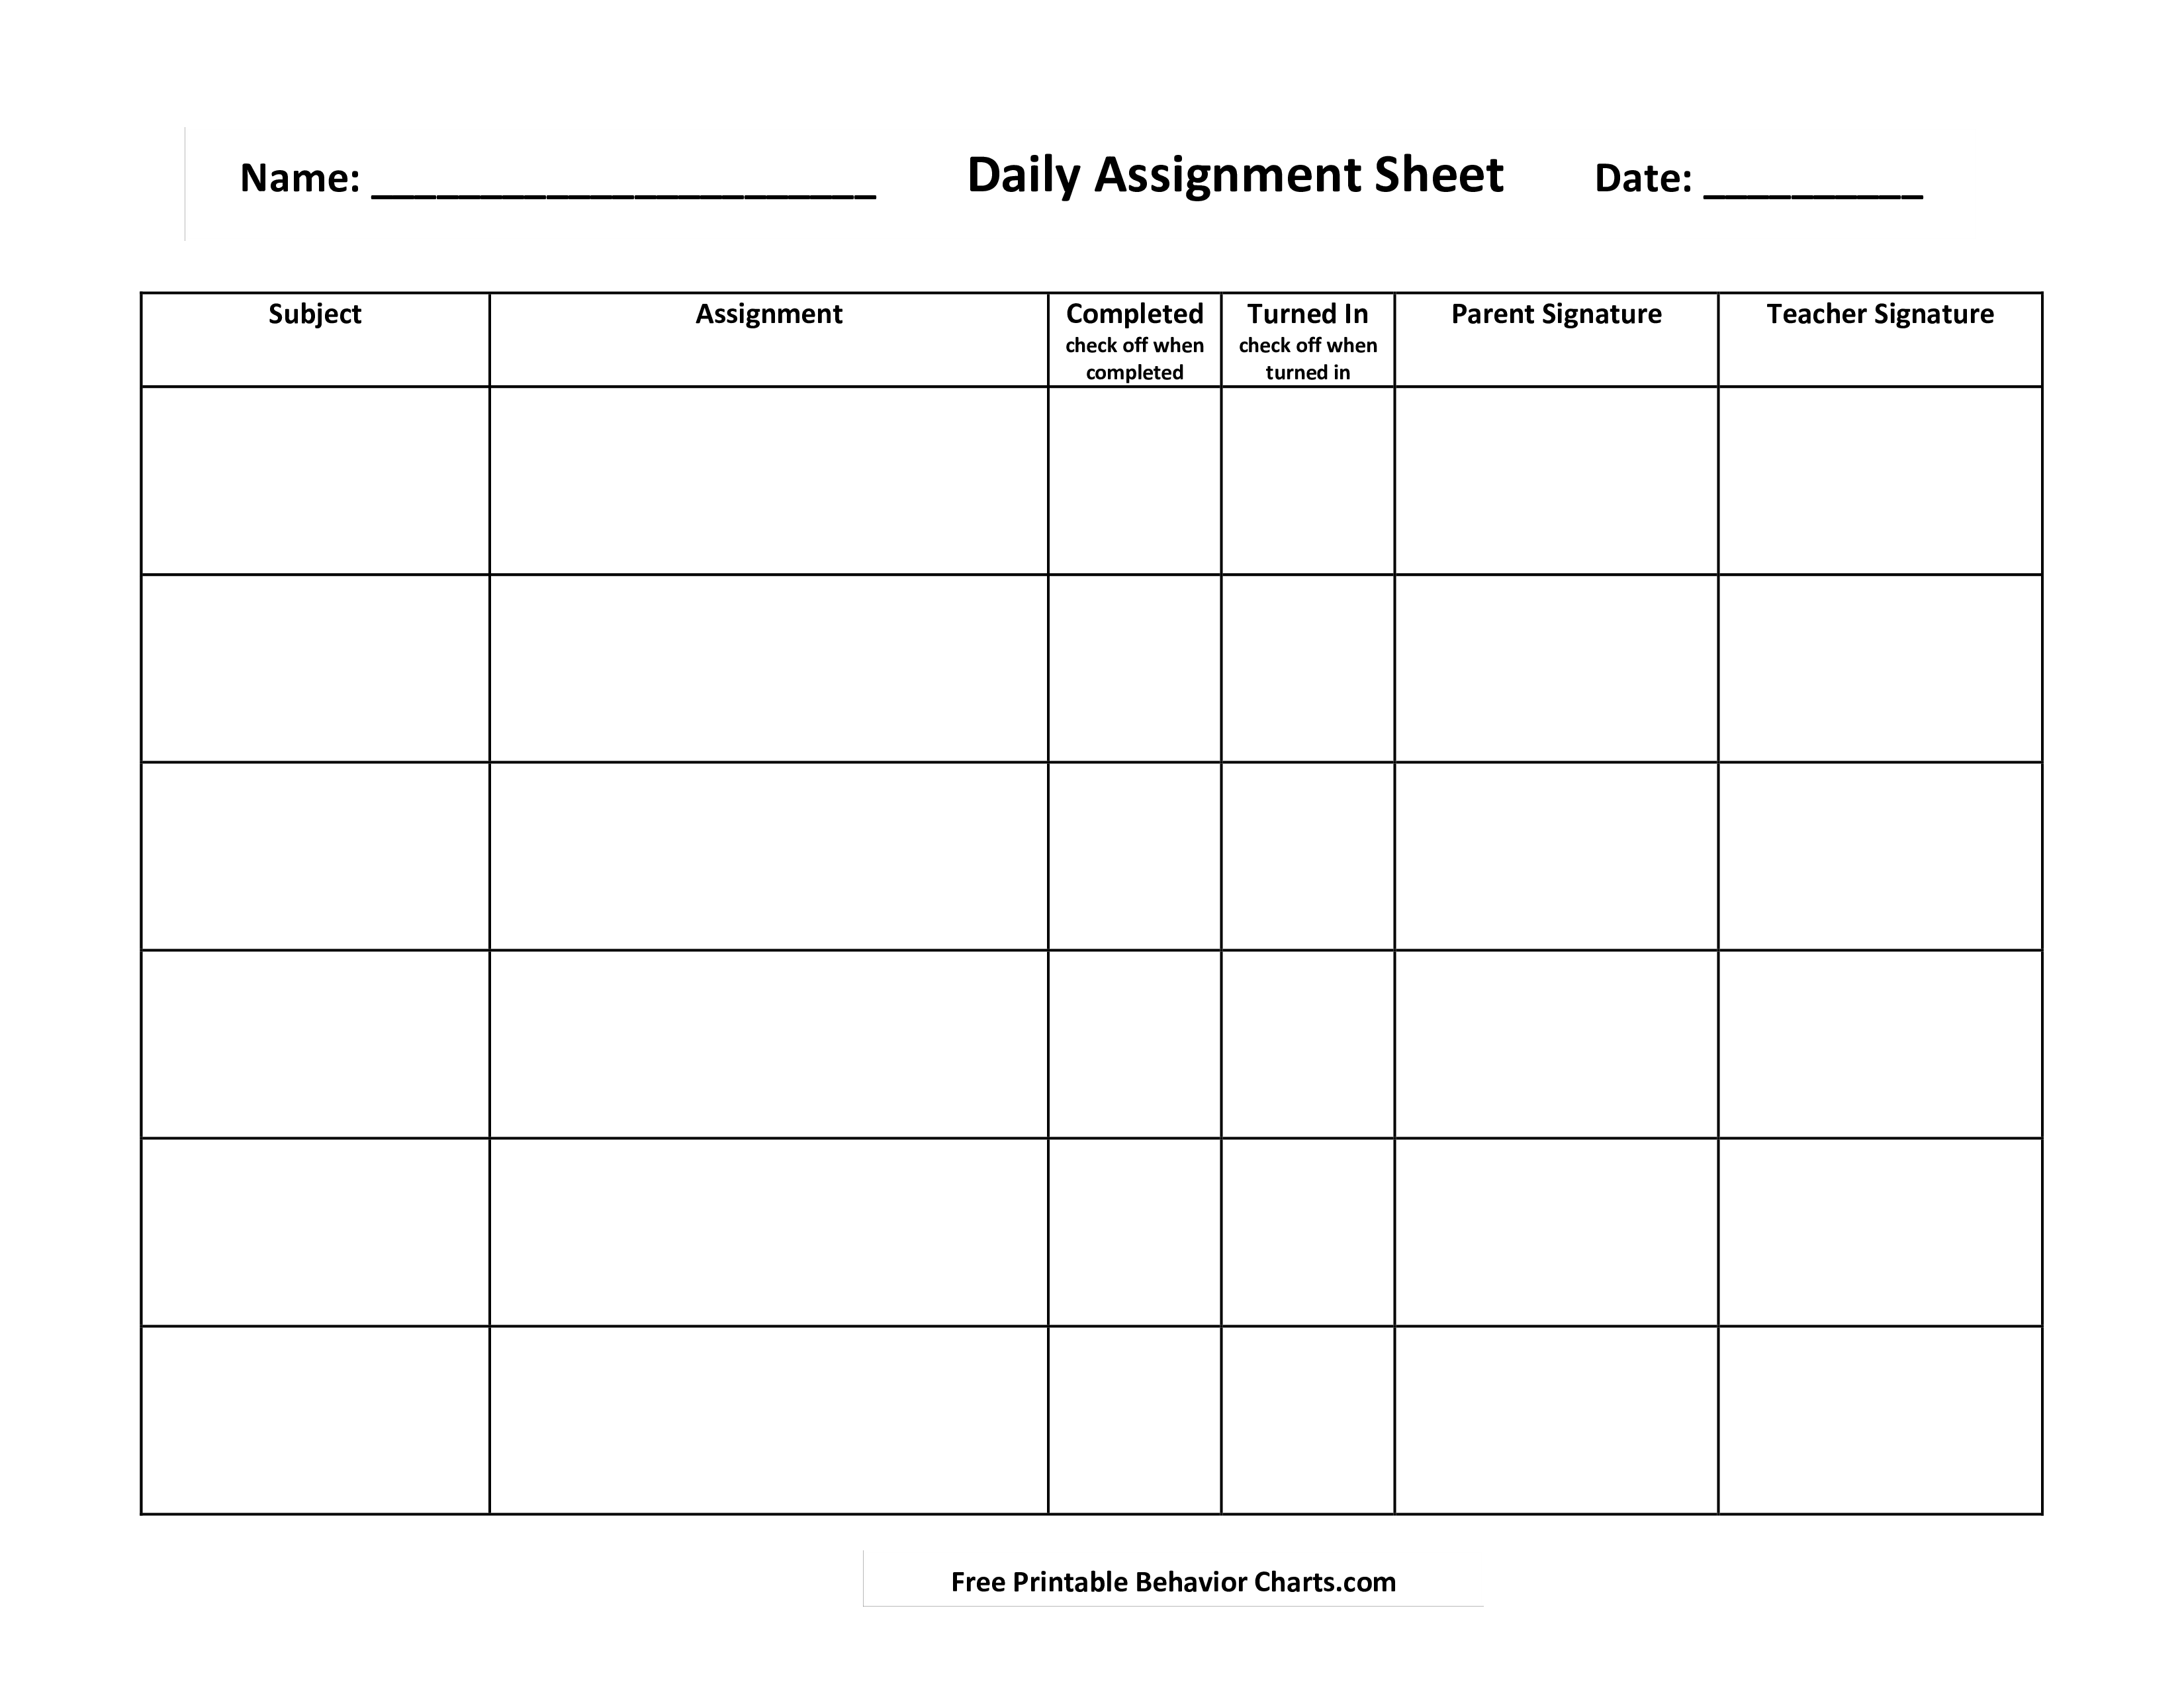 Daily Assignment How To Create A Daily Assignment Download This Daily Assignment Template Now Assignment Sheet Homework Checklist Templates